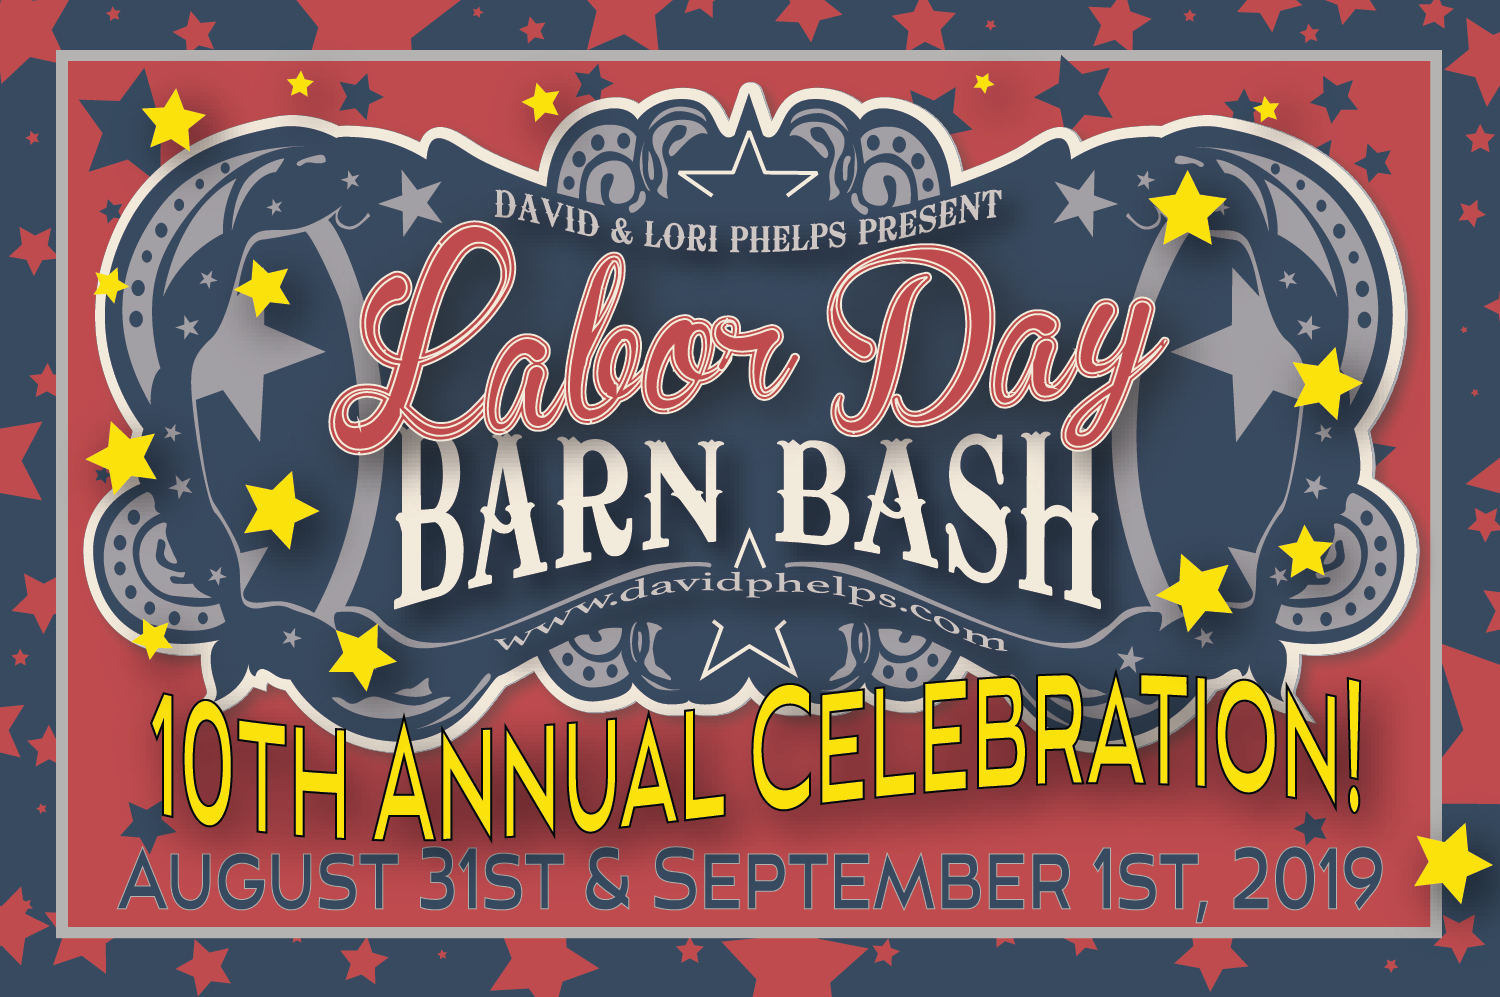 Labor Day Barn Bash 2019: 10th Annual Celebration!